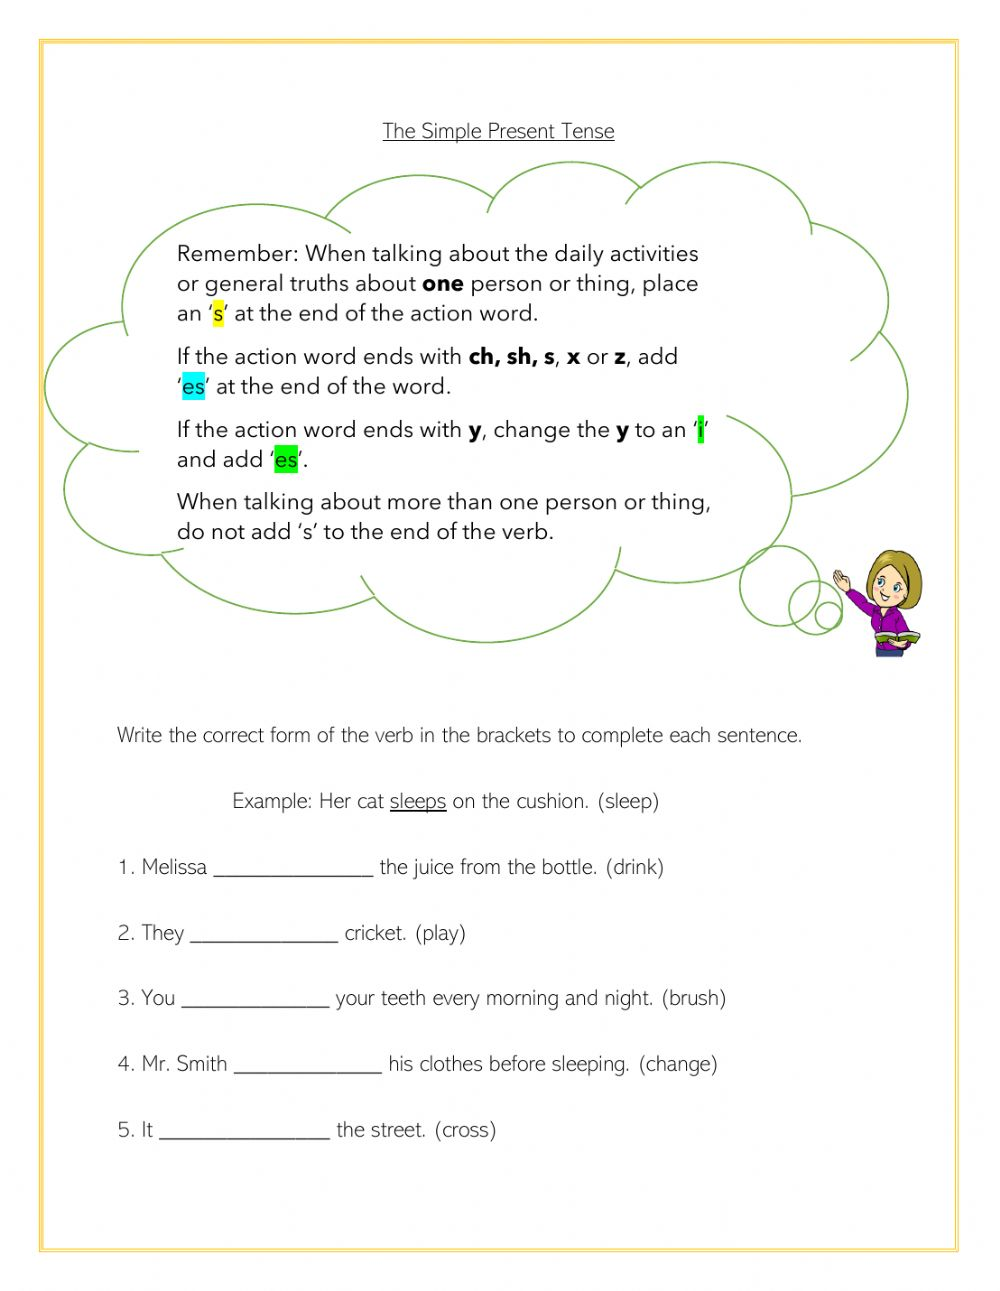 The Simple Present Tense All Rules Worksheet